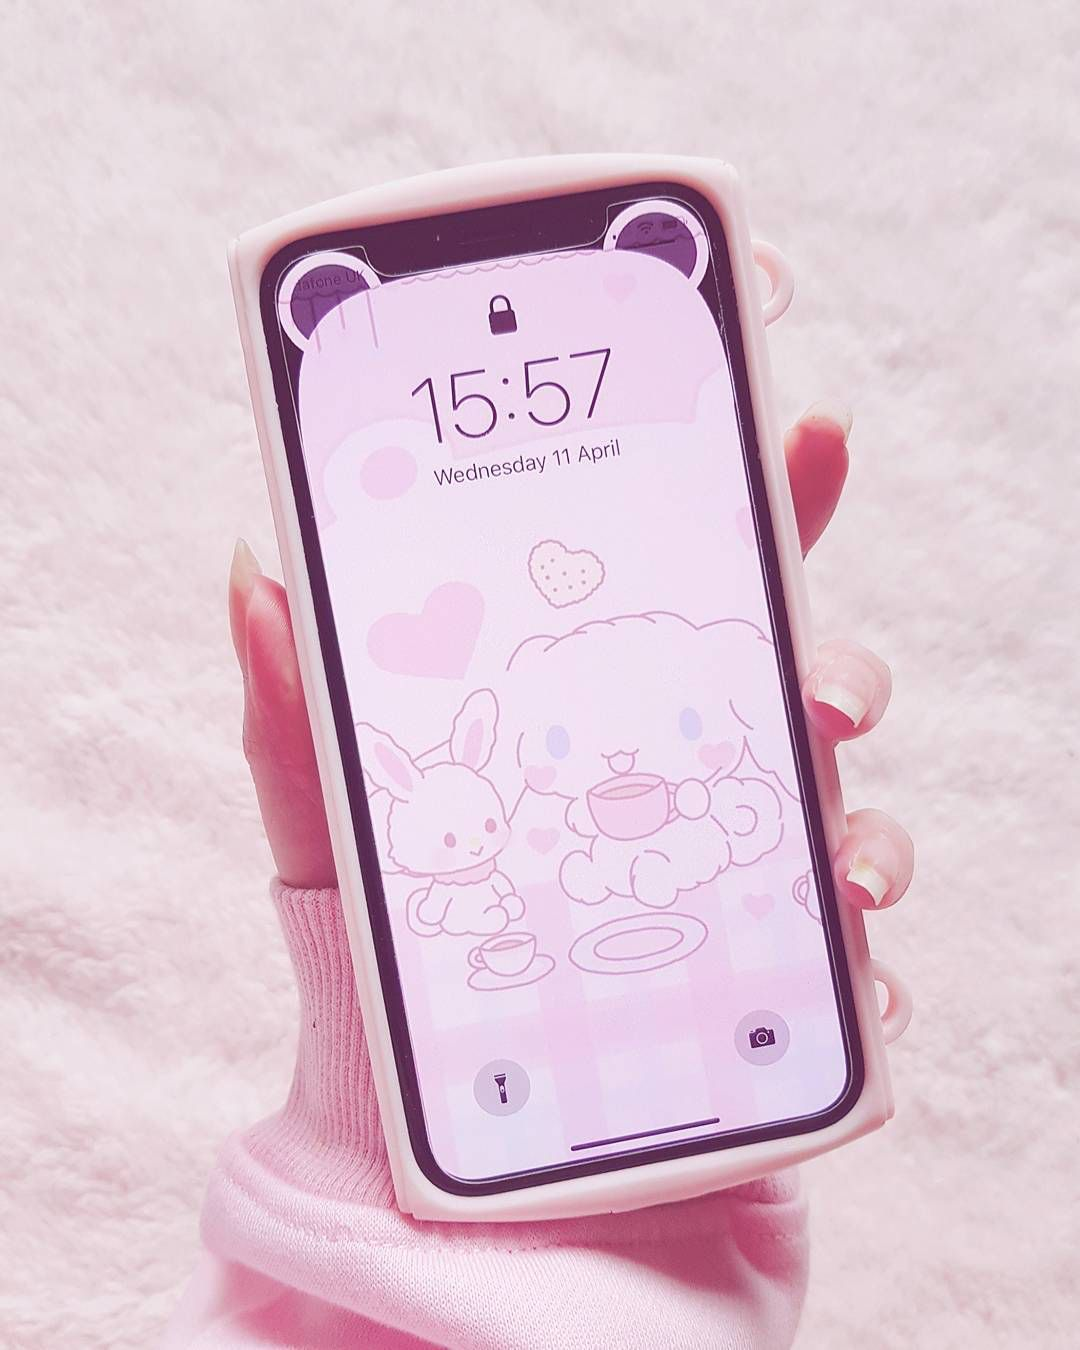 Pin by norrellaa on TECH Kawaii phone case, Phone themes